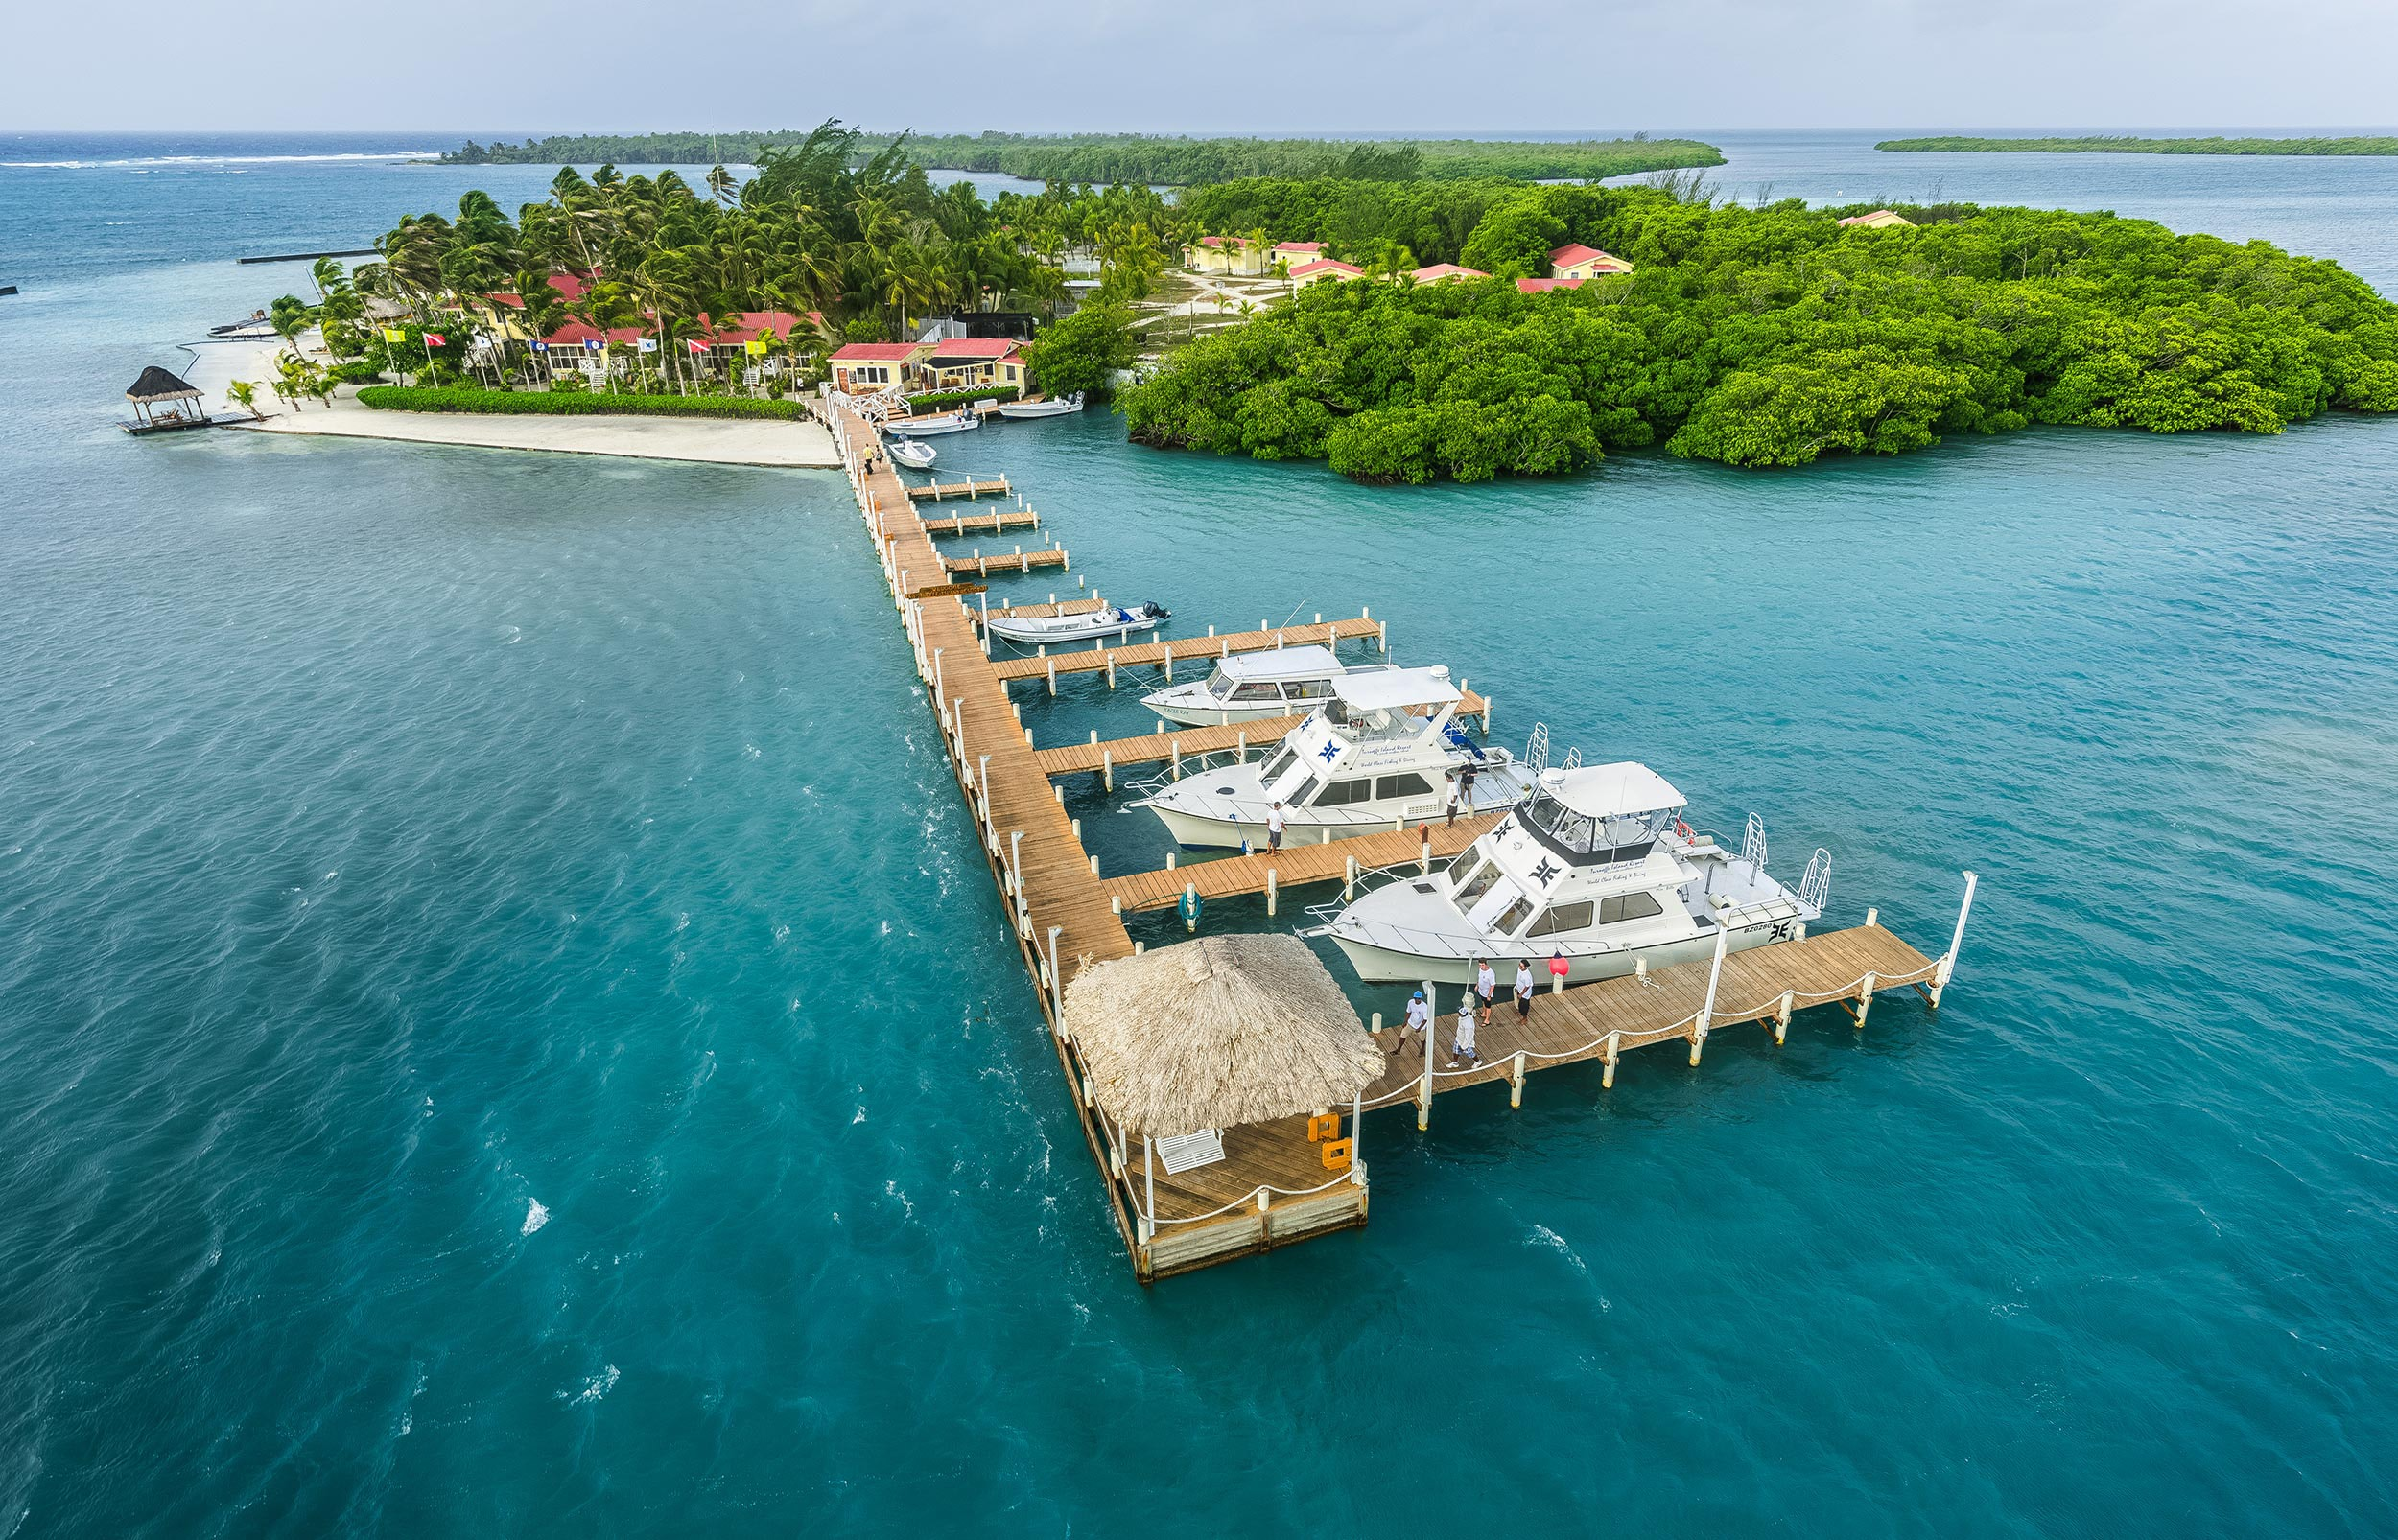 The dive center is located at the base of the resort's main dock, where it is just a short walk away from guest rooms.